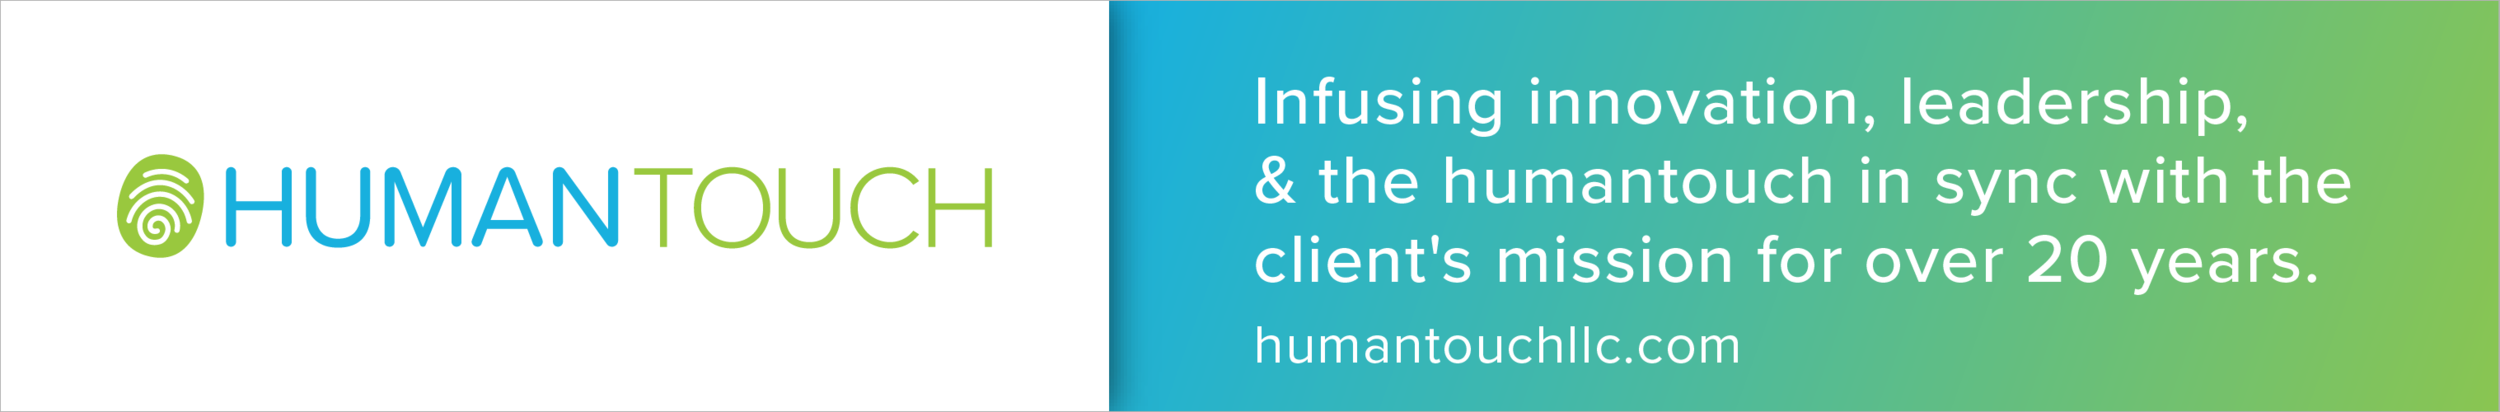 HumanTouch G2xchange banner-01.png